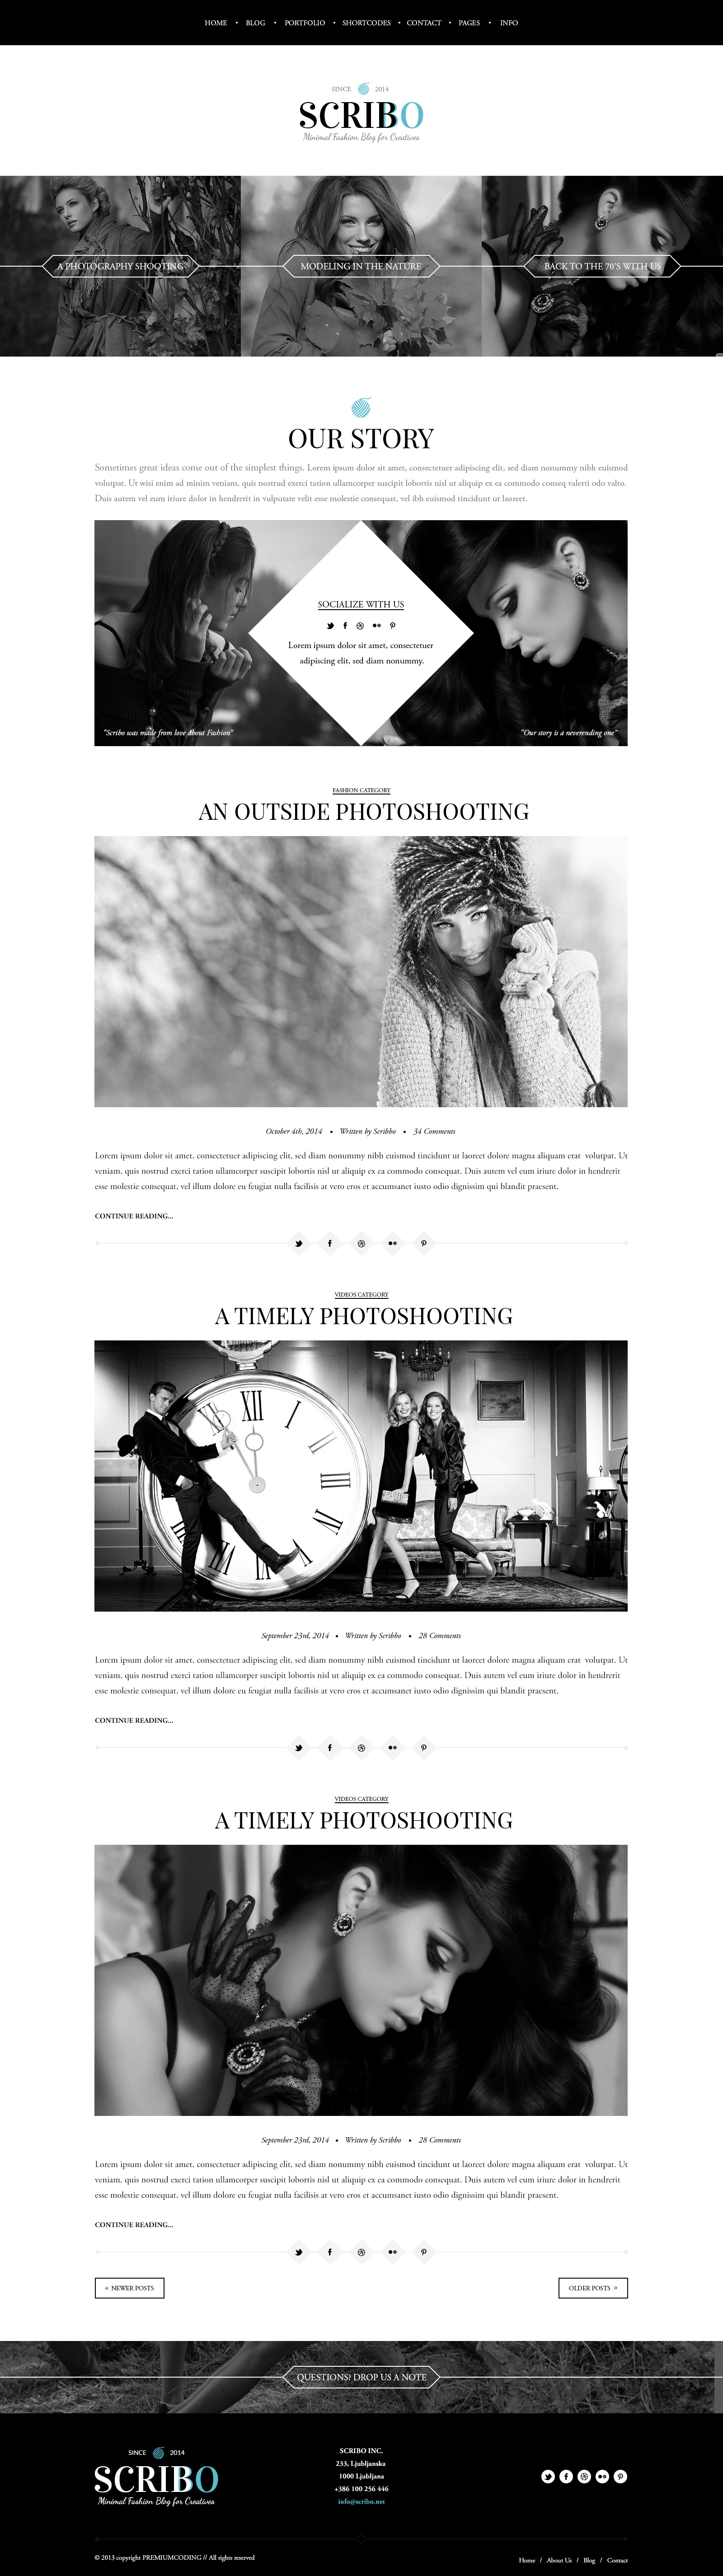 01_scribo-home-page